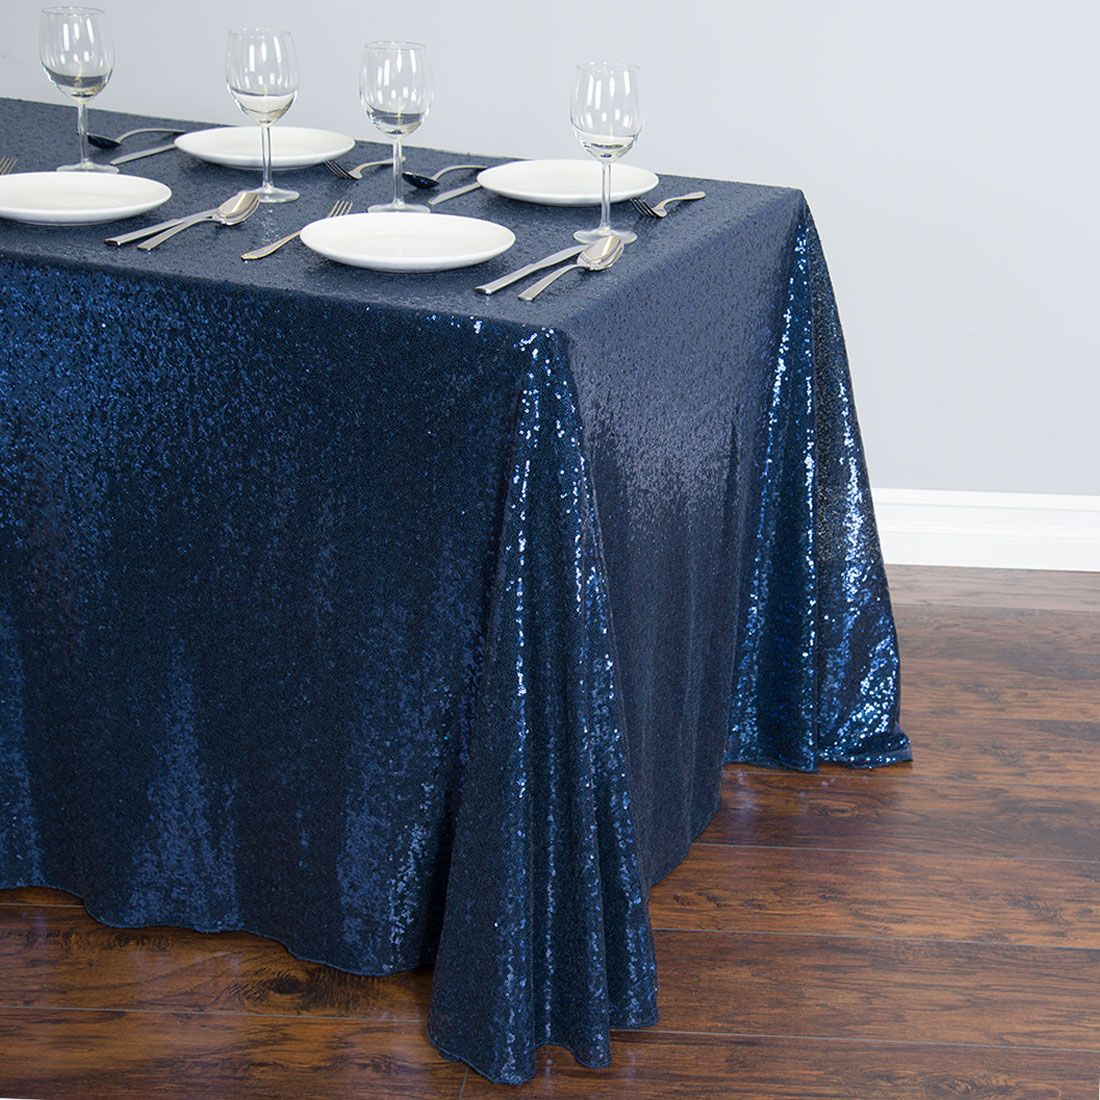 Rectangle Tablecloths | Oblong Tablecloths At LinenTablecloth .